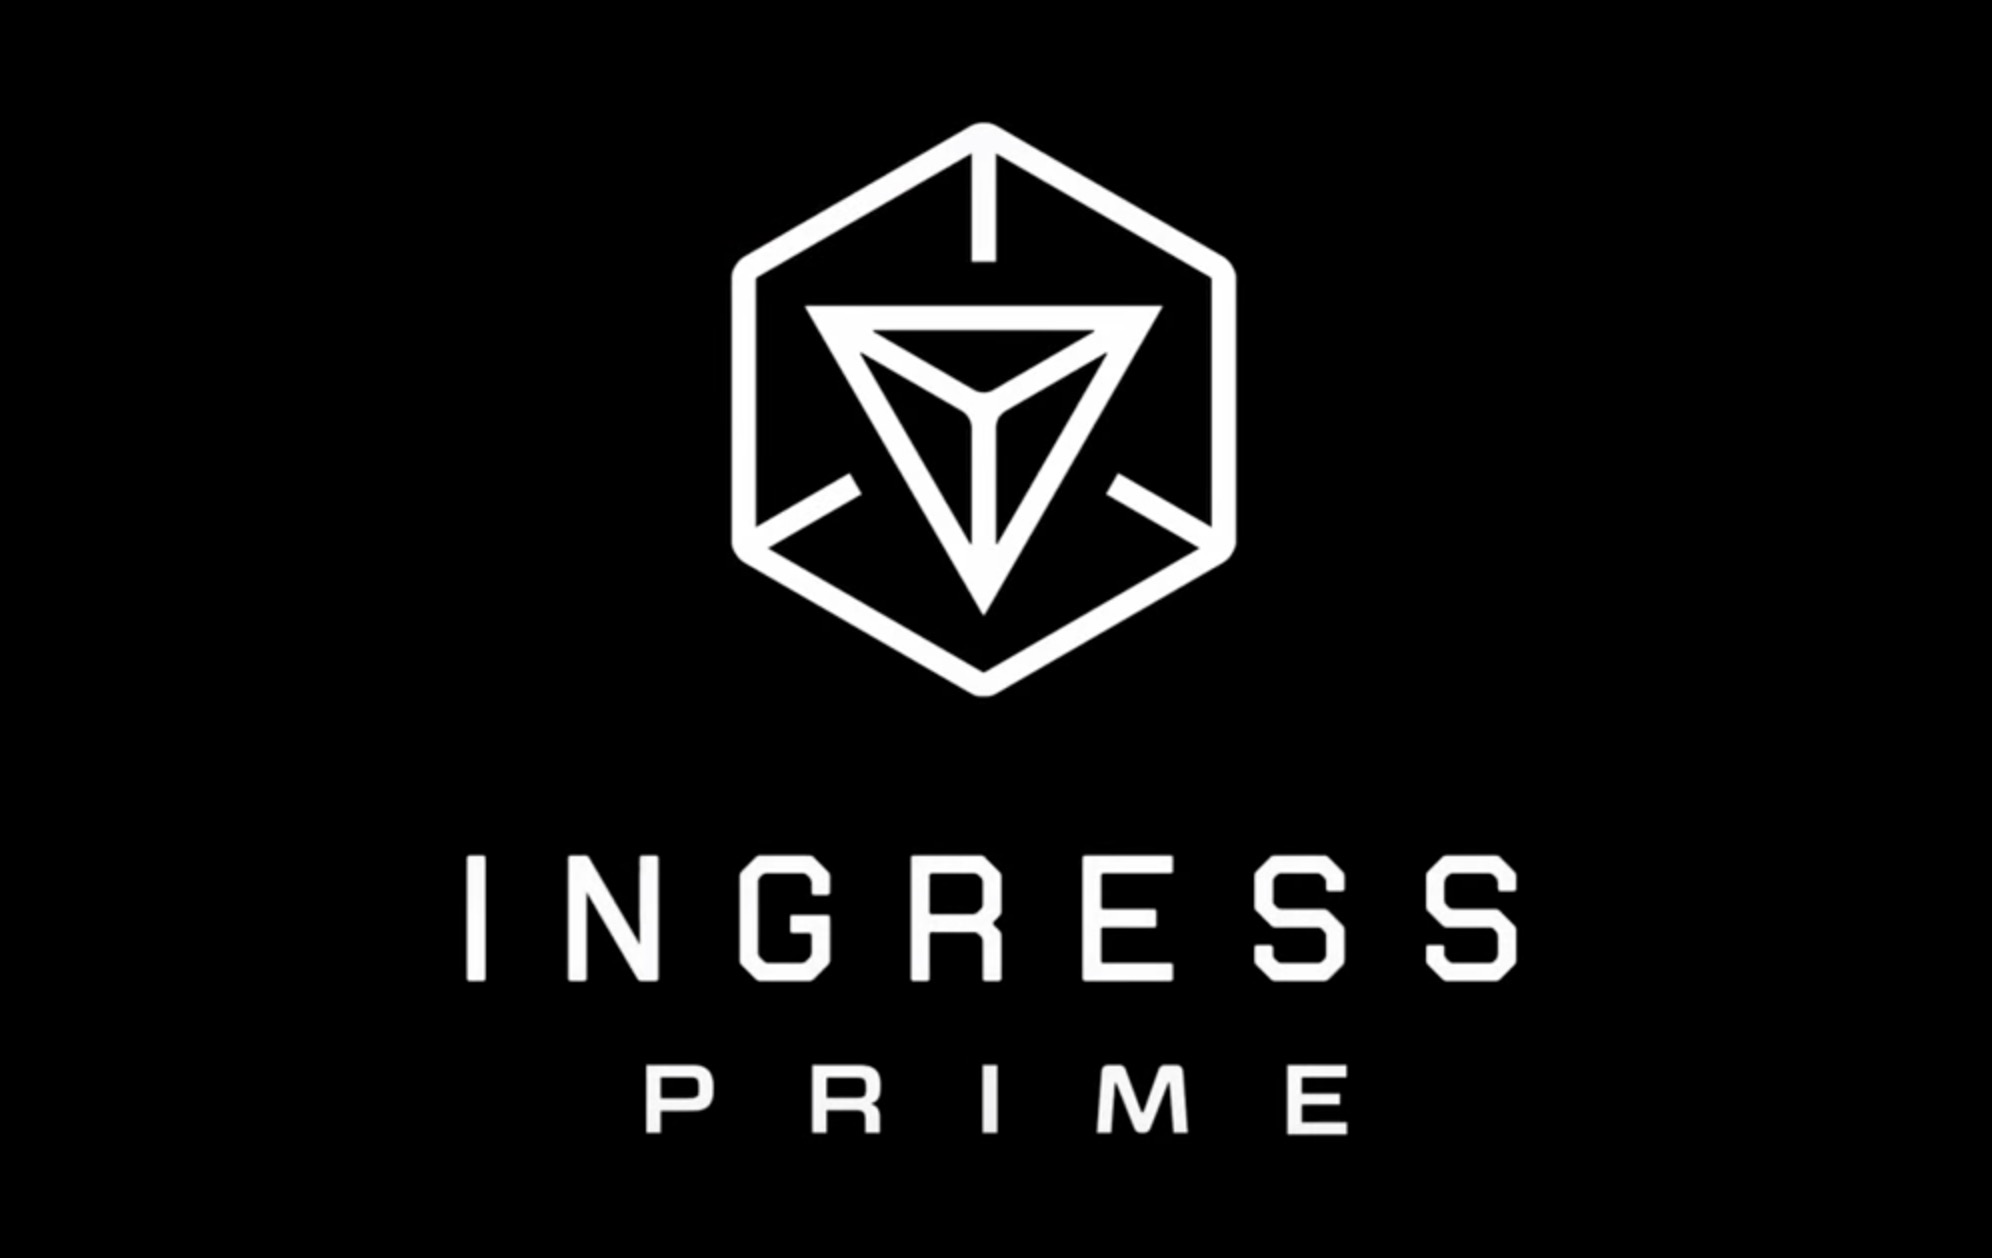 10 Common Ingress Prime Problems & Fixes